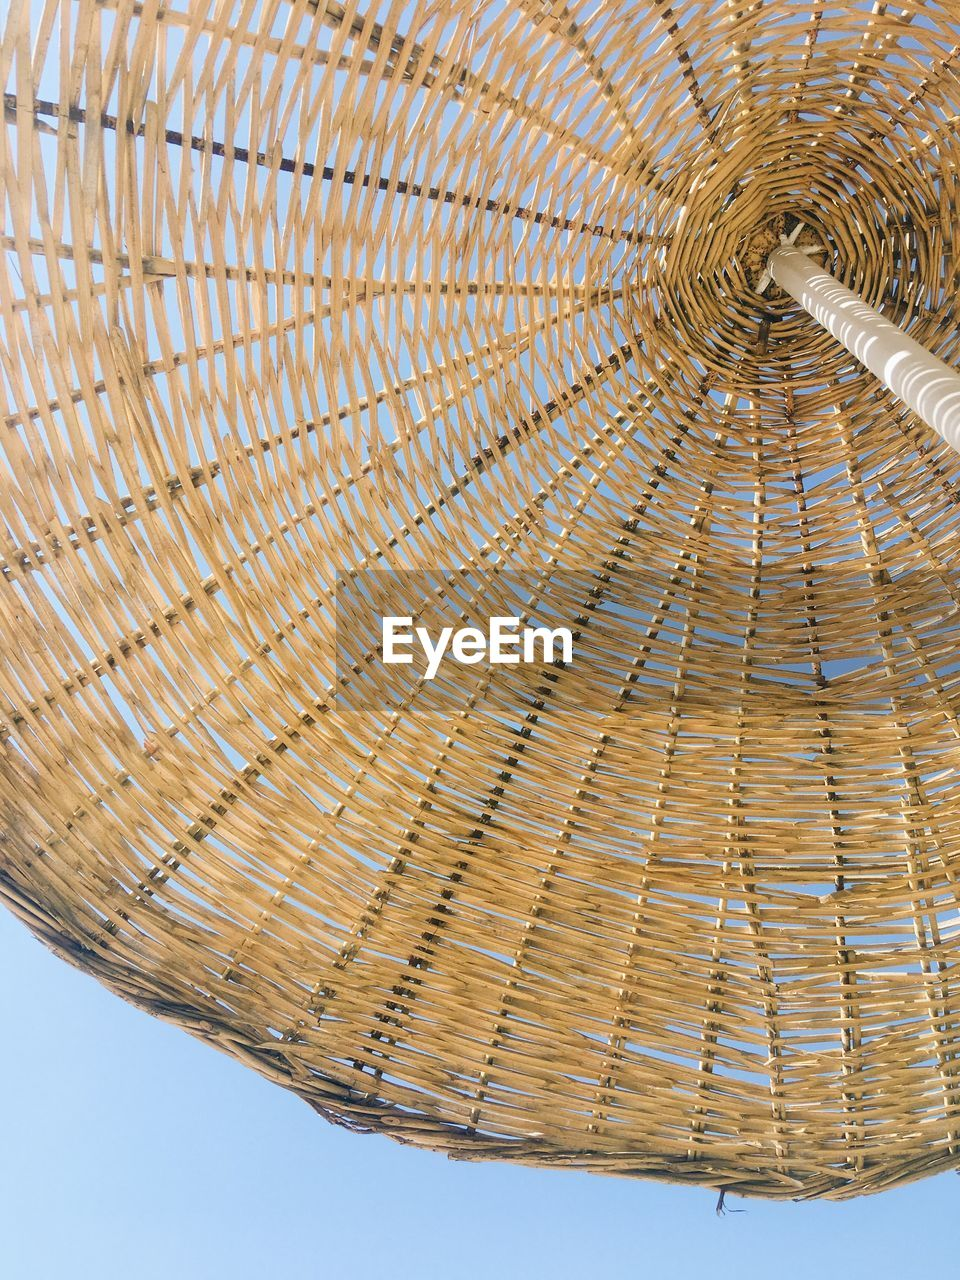 no people, basket, low angle view, close-up, day, outdoors, sky